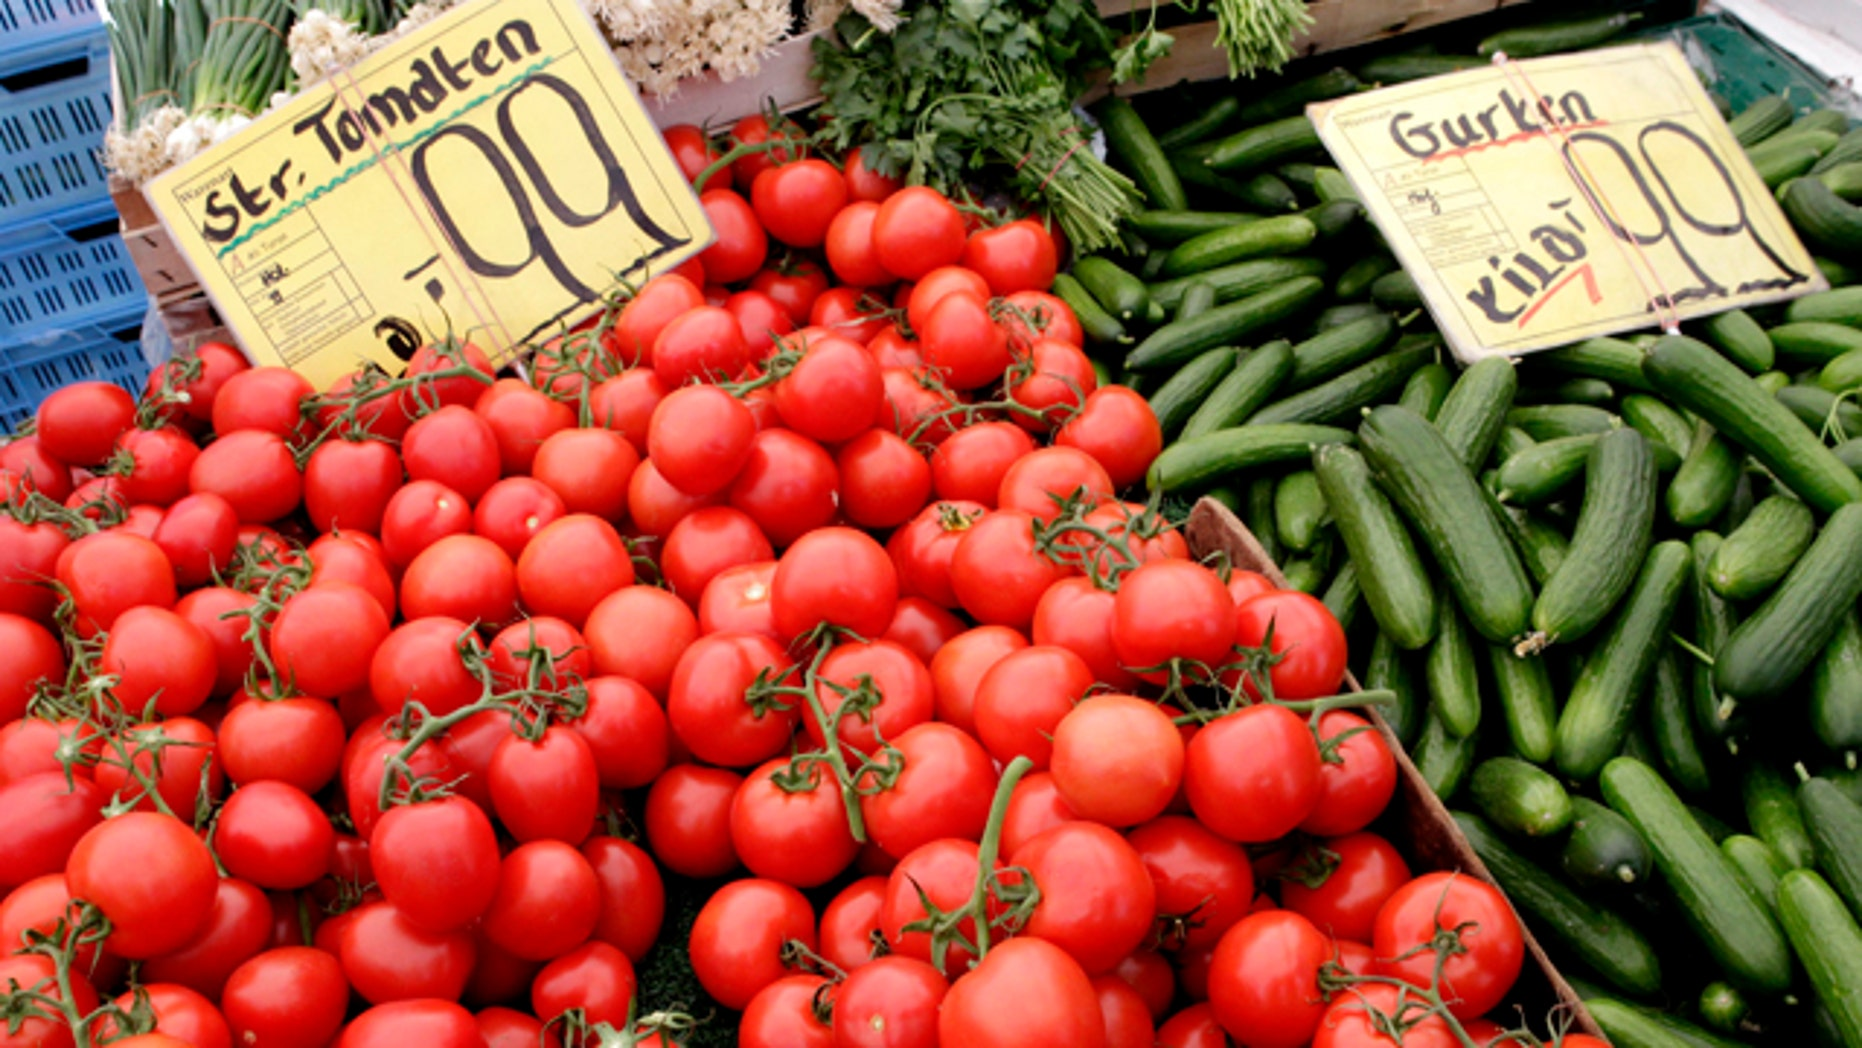 June 3: Tomatoes and cucumbers from Holland are displayed for sale at a market in Berlin, Germany. Nearly 200 new cases of E. coli infection were reported in Germany in the first two days of June, the national disease control center reported Friday, but officials say there are signs the European bacterial outbreak that has killed 18 people could be slowing.